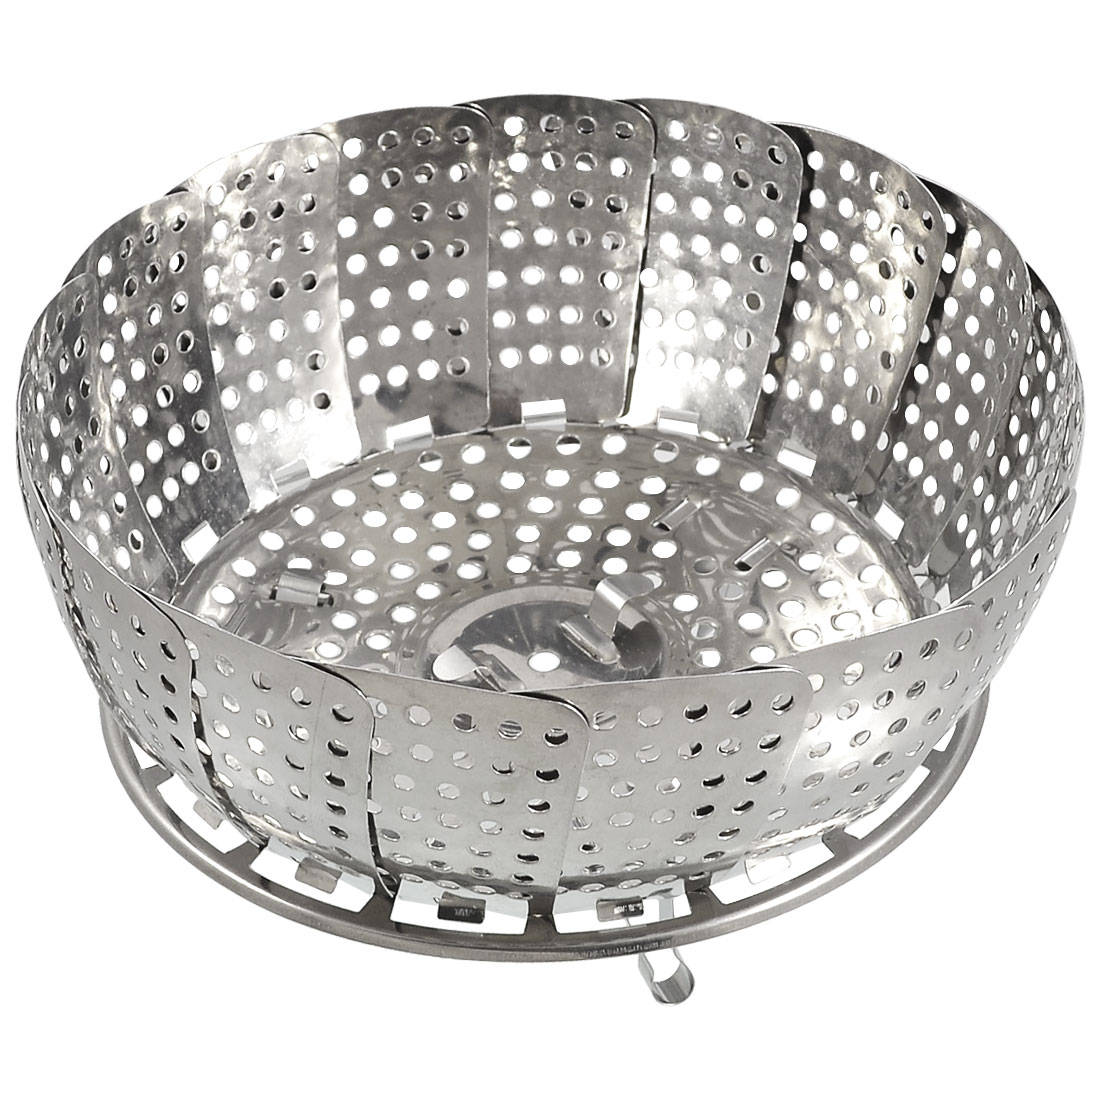 Kitchen Folding Stainless Steel Mesh Holes Steam Basket Cooker